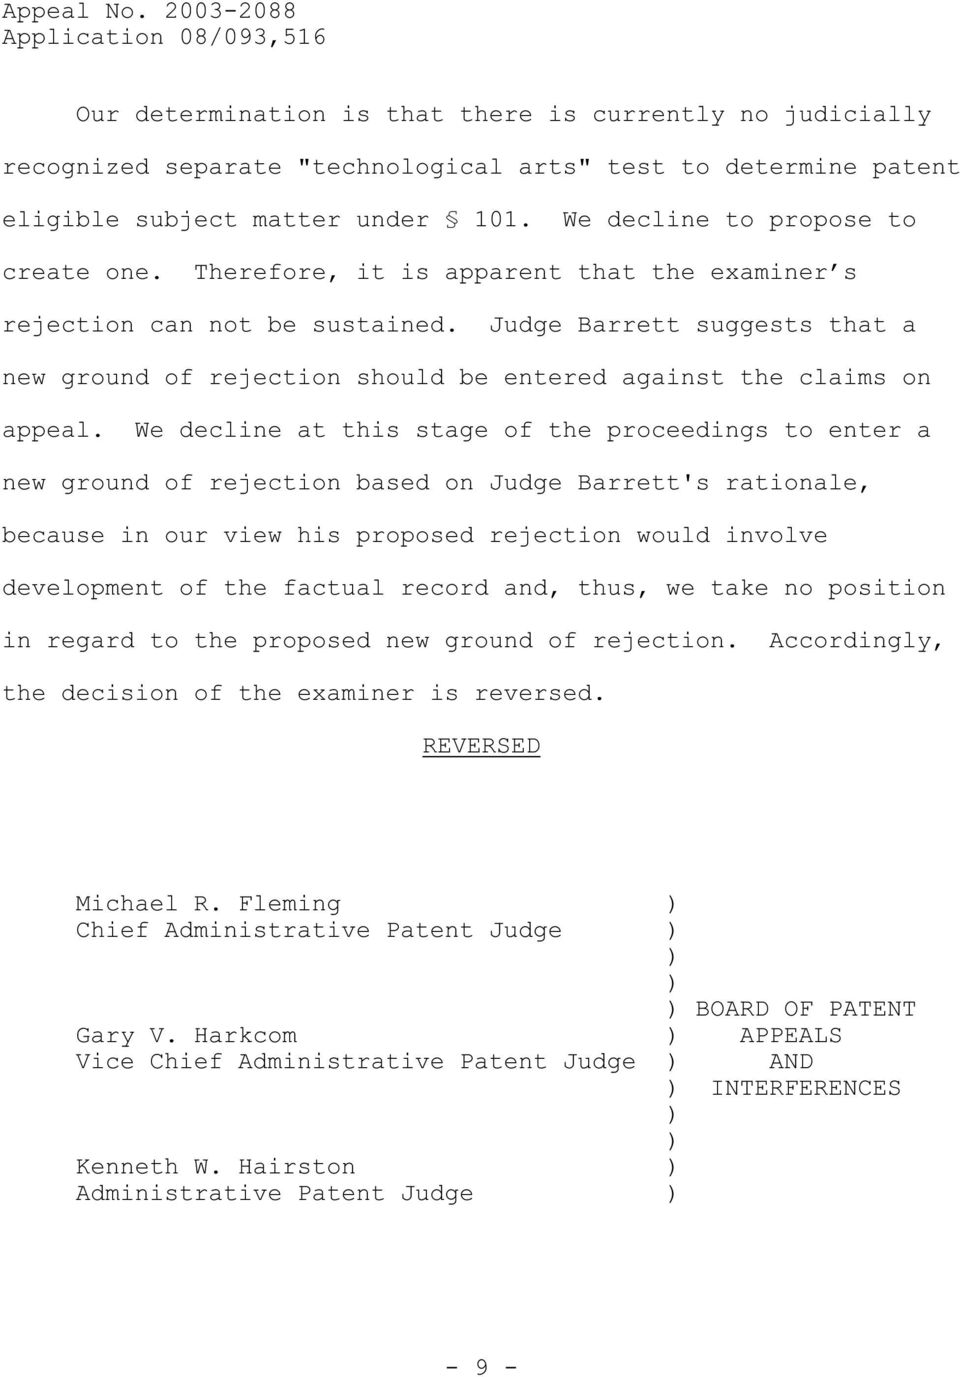 We decline at this stage of the proceedings to enter a new ground of rejection based on Judge Barrett's rationale, because in our view his proposed rejection would involve development of the factual